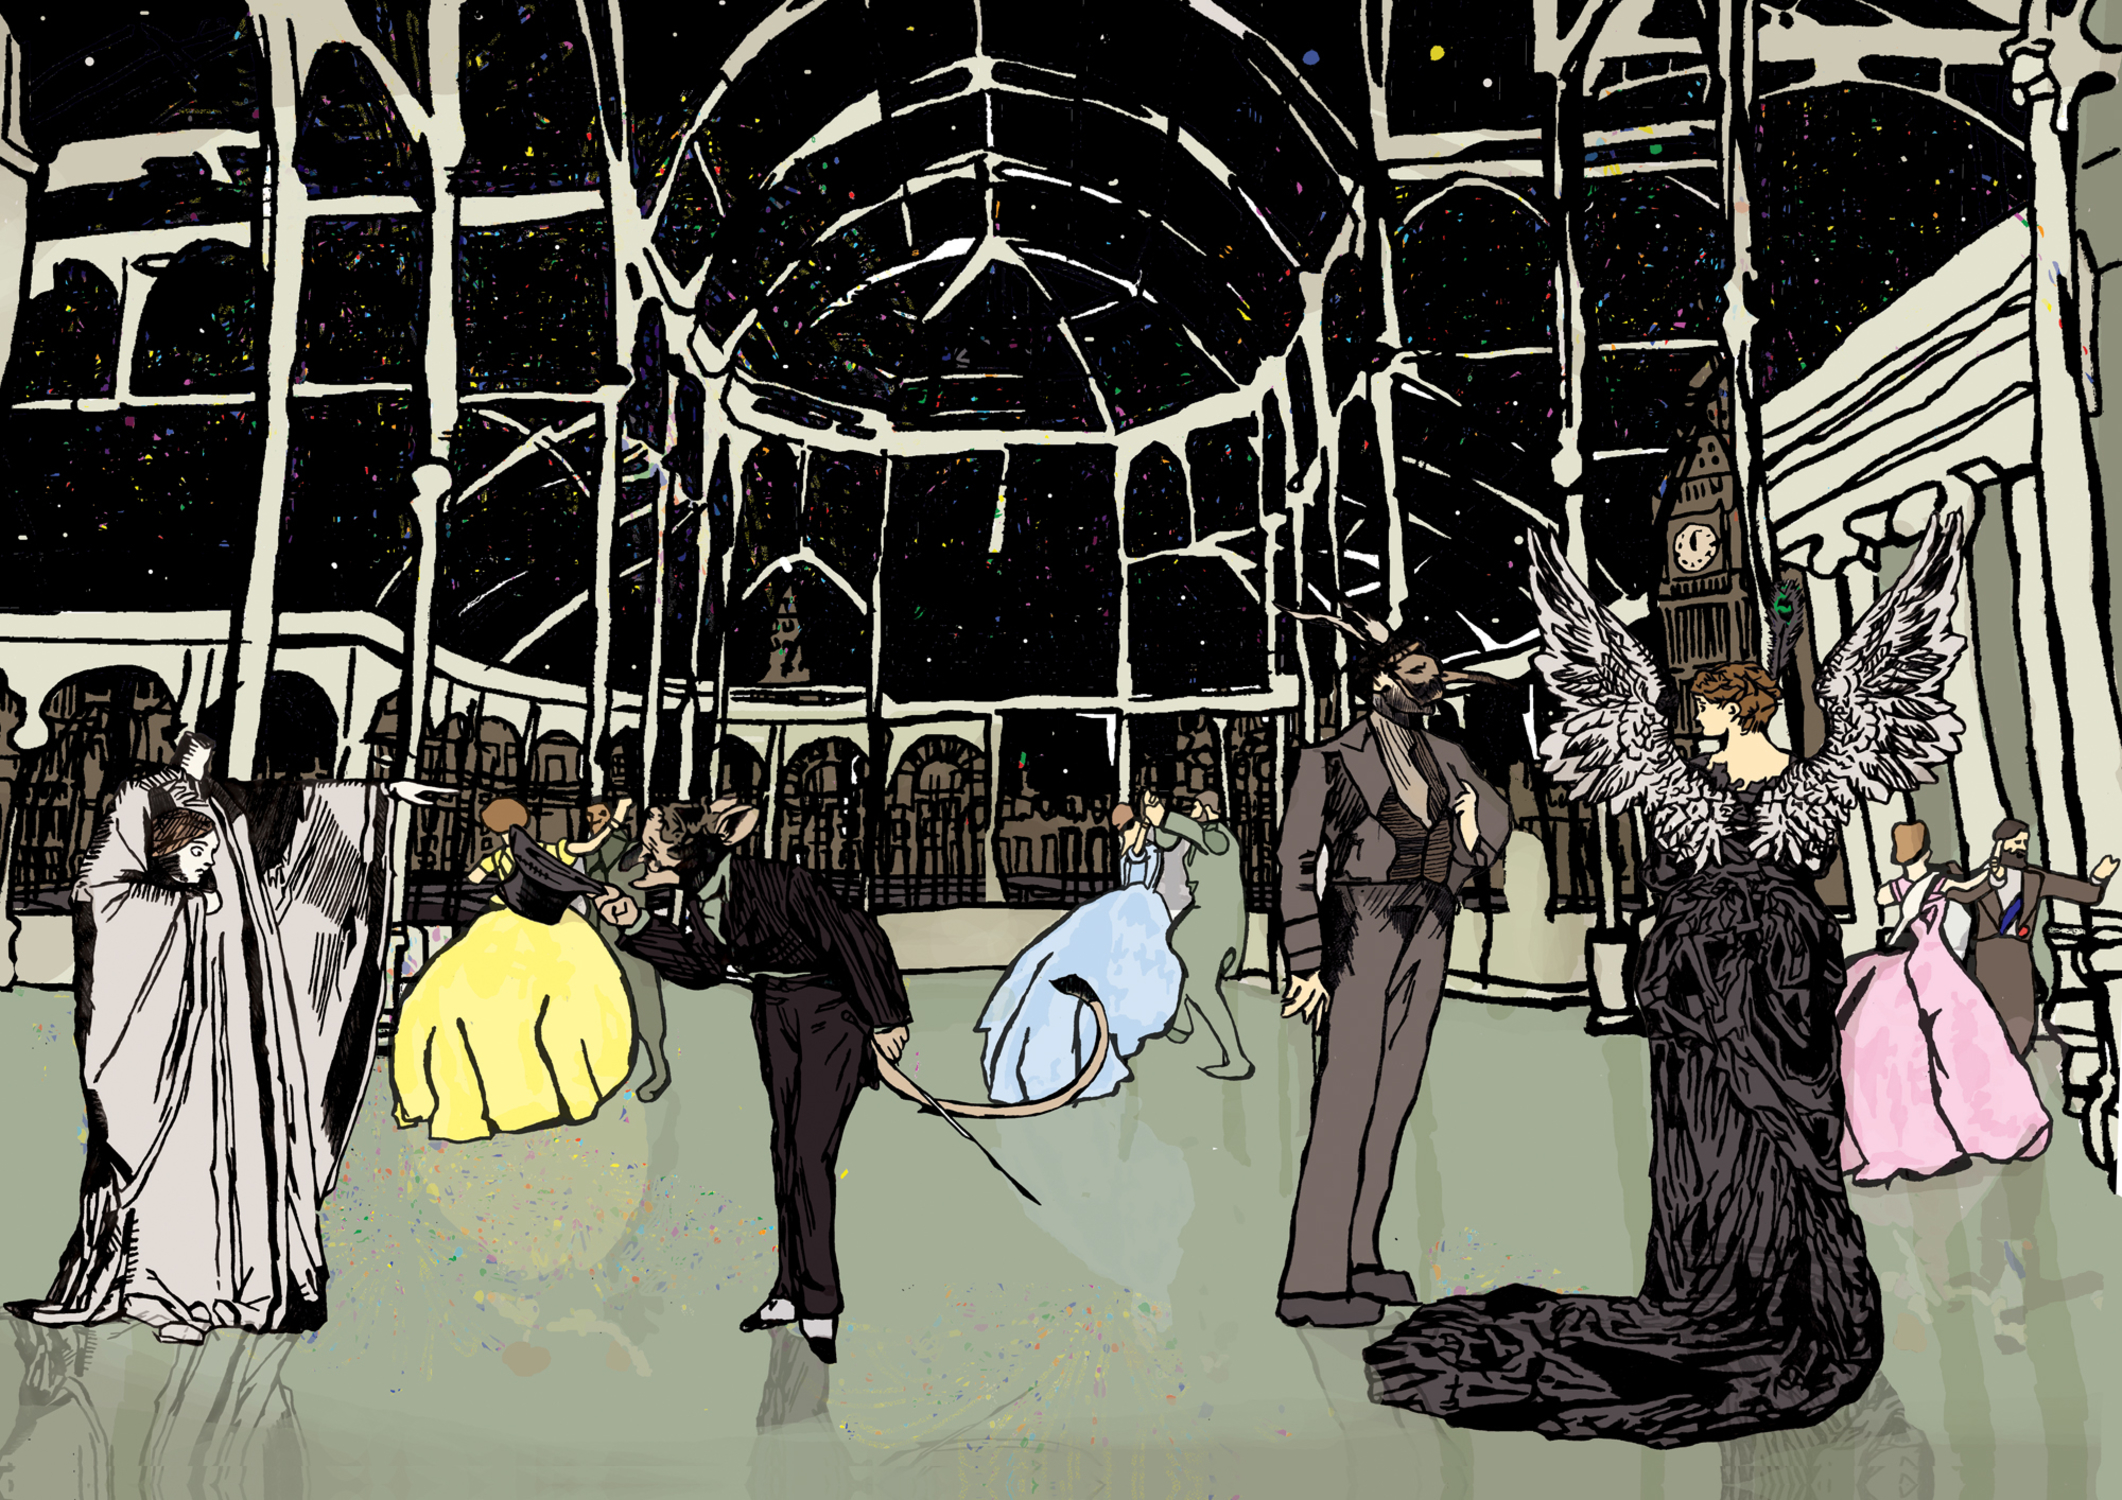 New Year's Eve in London, 1884 Artwork by Natalie Knowles